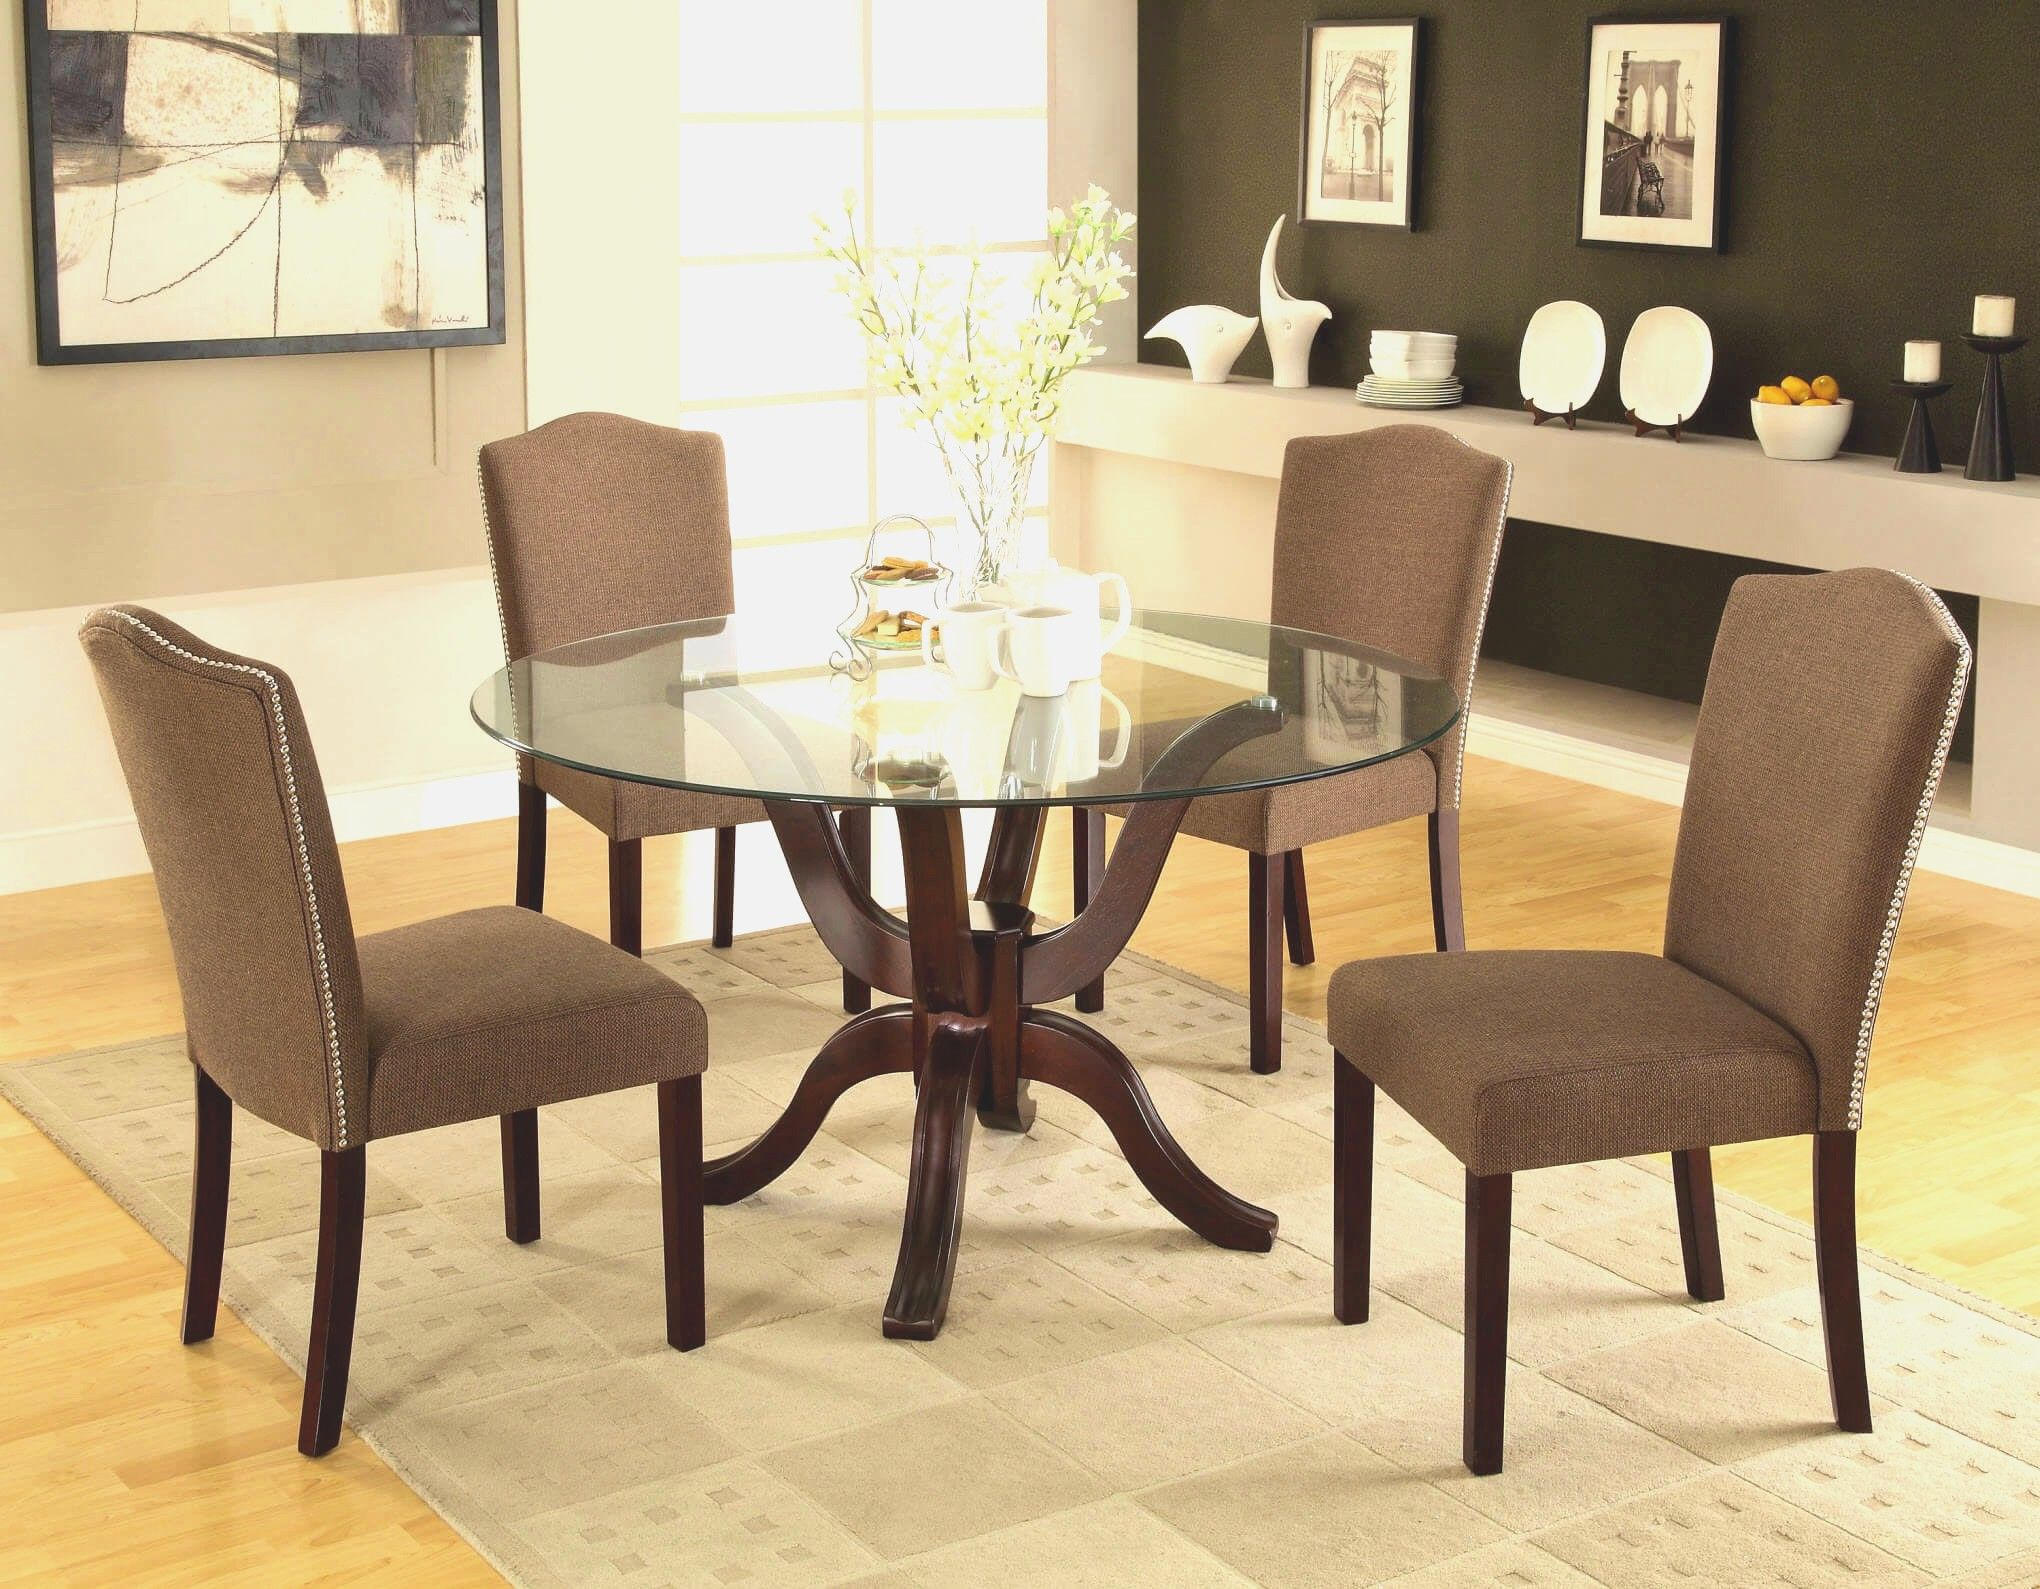 Macys dining room chairs macy s bradford dining room furniture collection macy s cappuccino